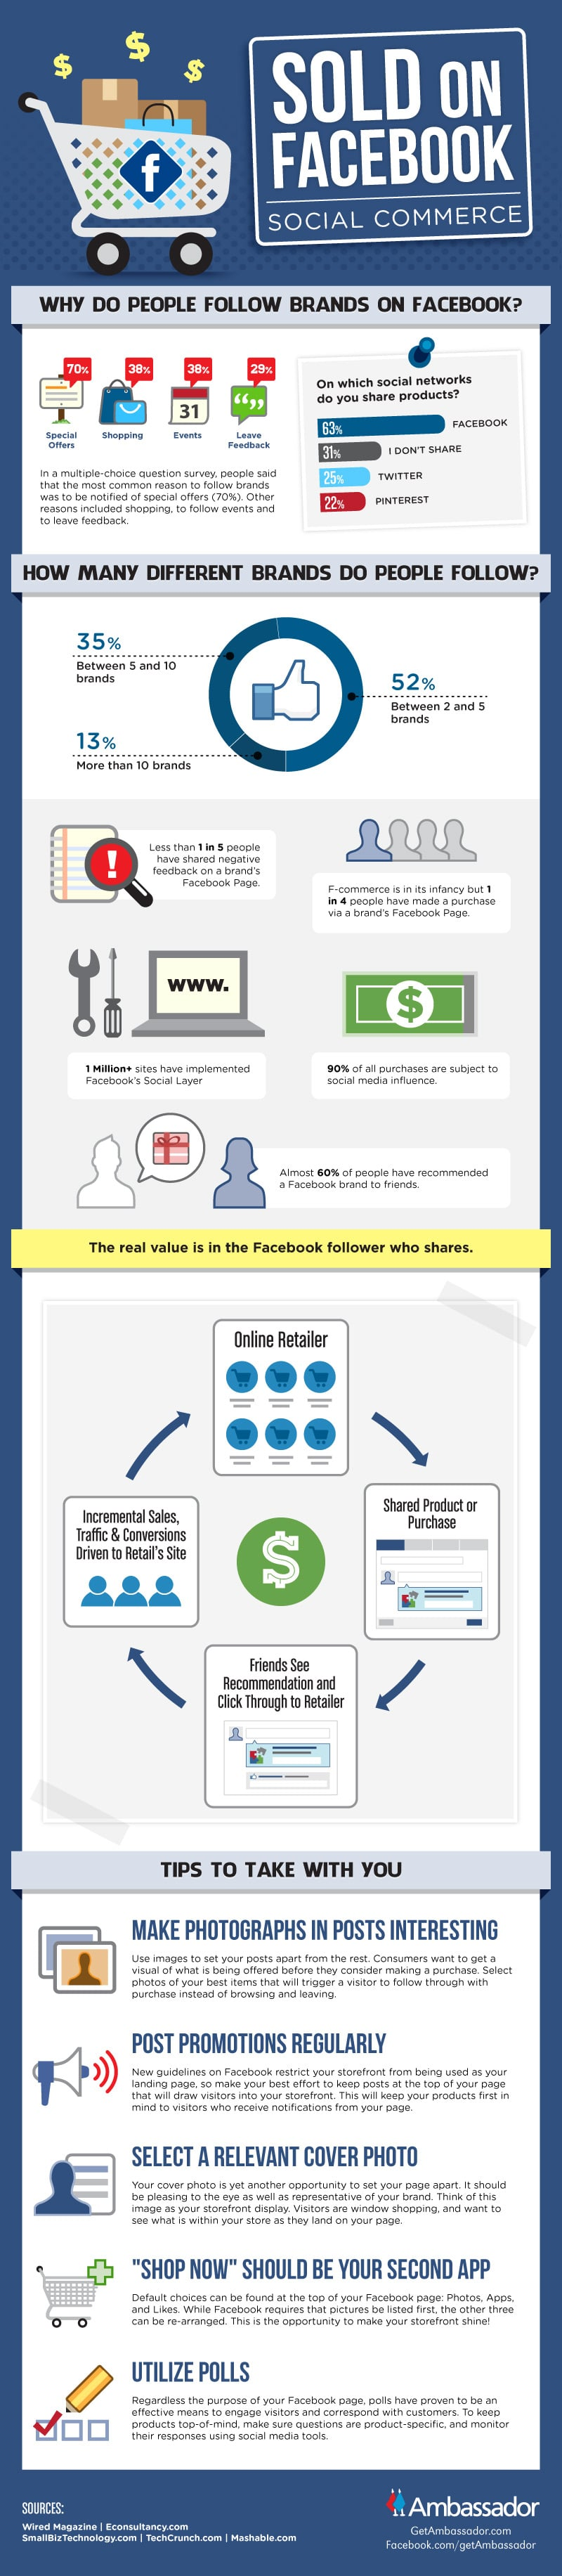 social-commerce-on-facebook-infographic